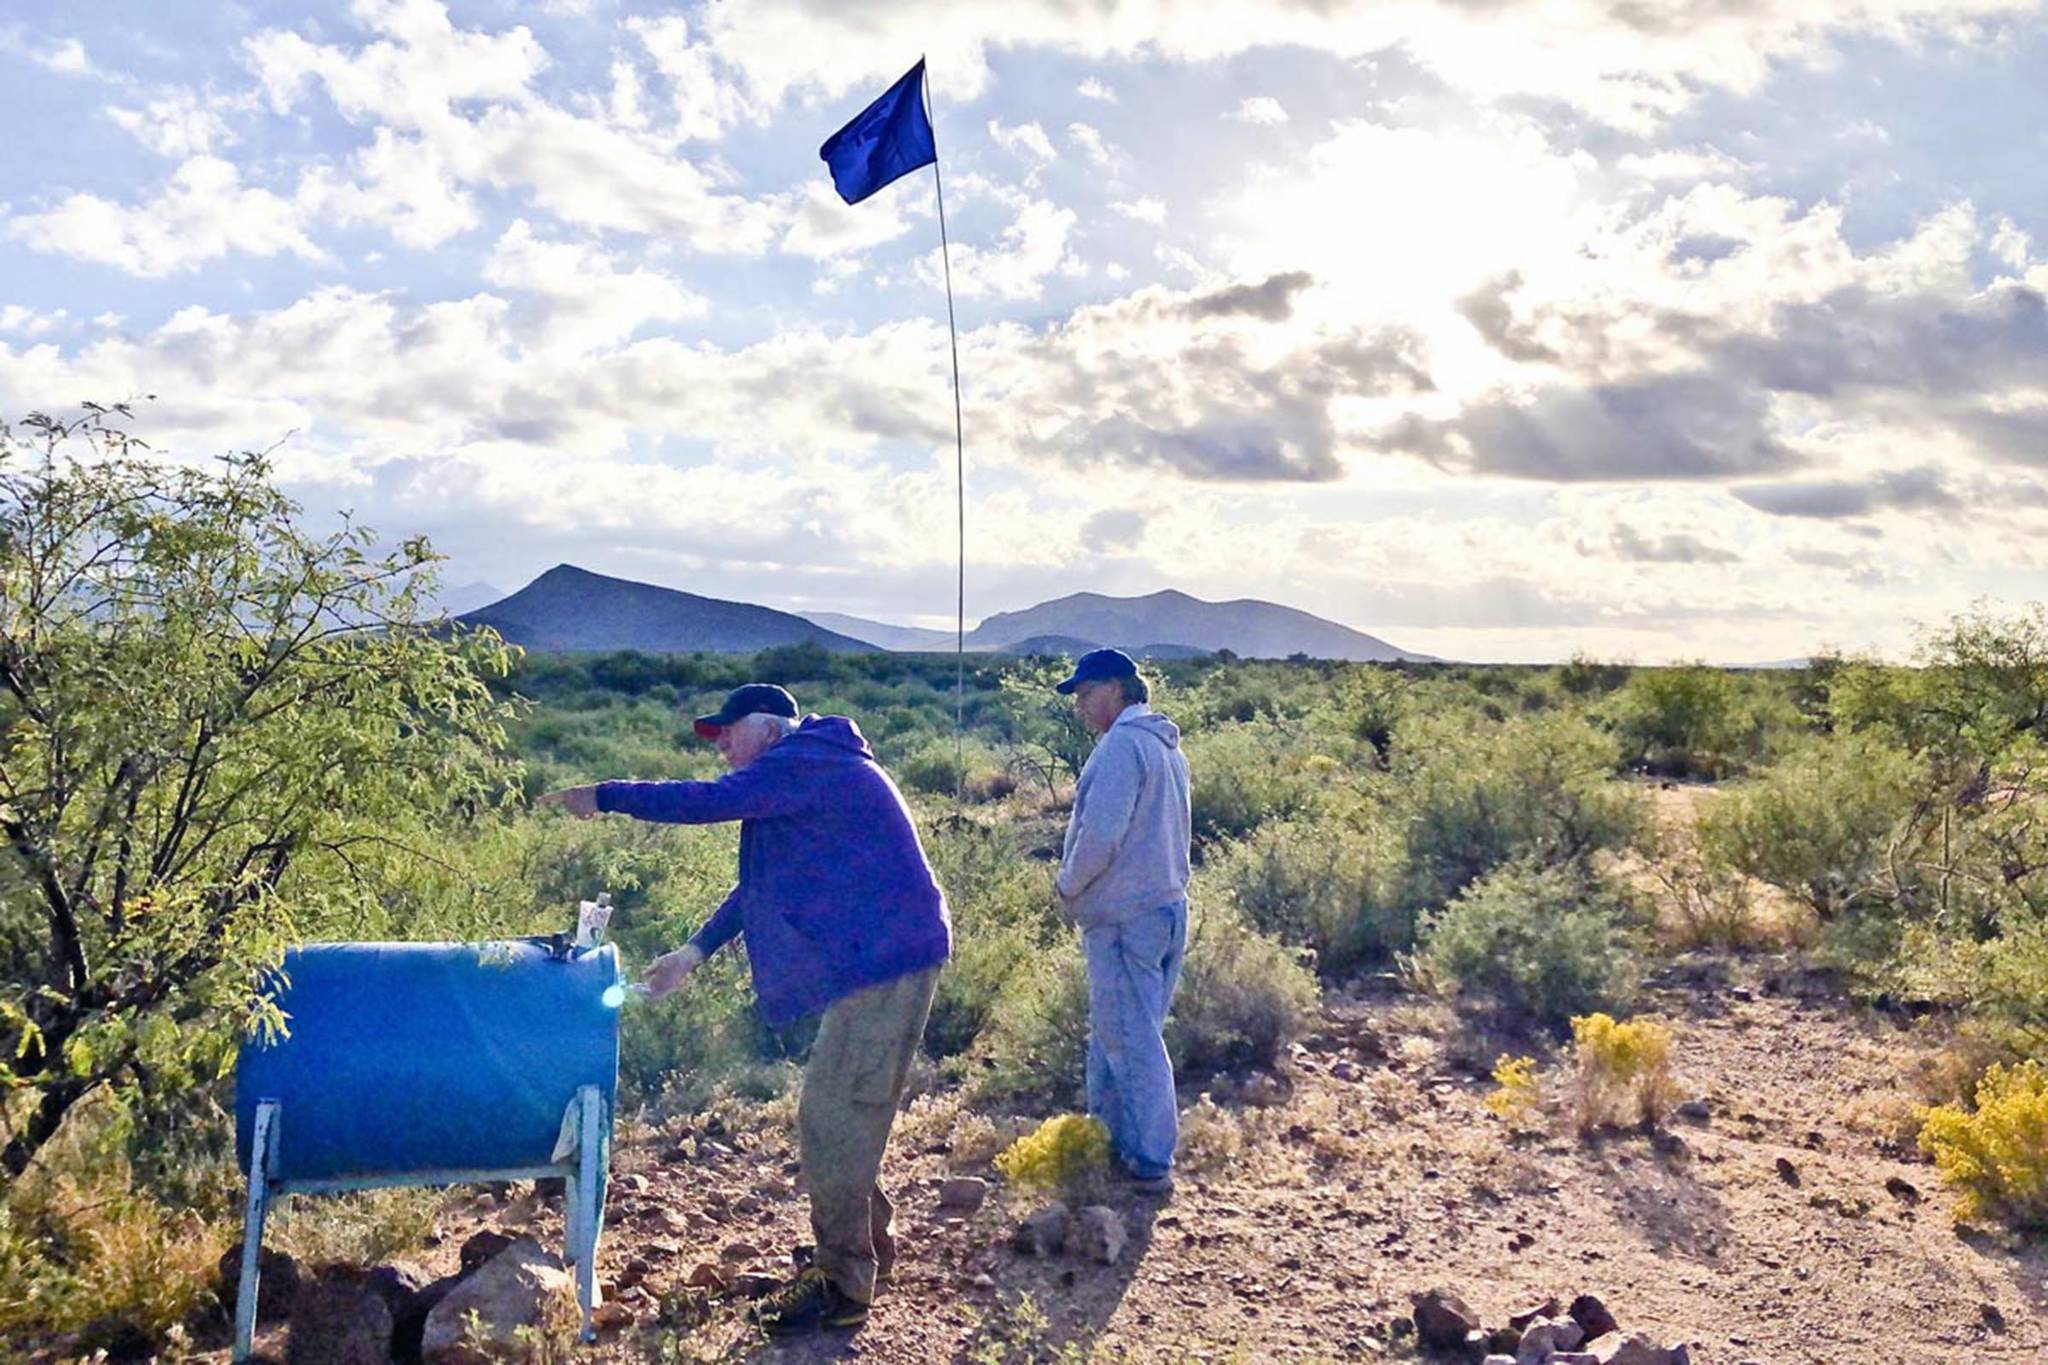 Ken Huse | Courtesy Photo                                 Volunteers from Humane Borders, a charitable organization, fill a water drum in the Arizona desert for immigrants traveling the waste.